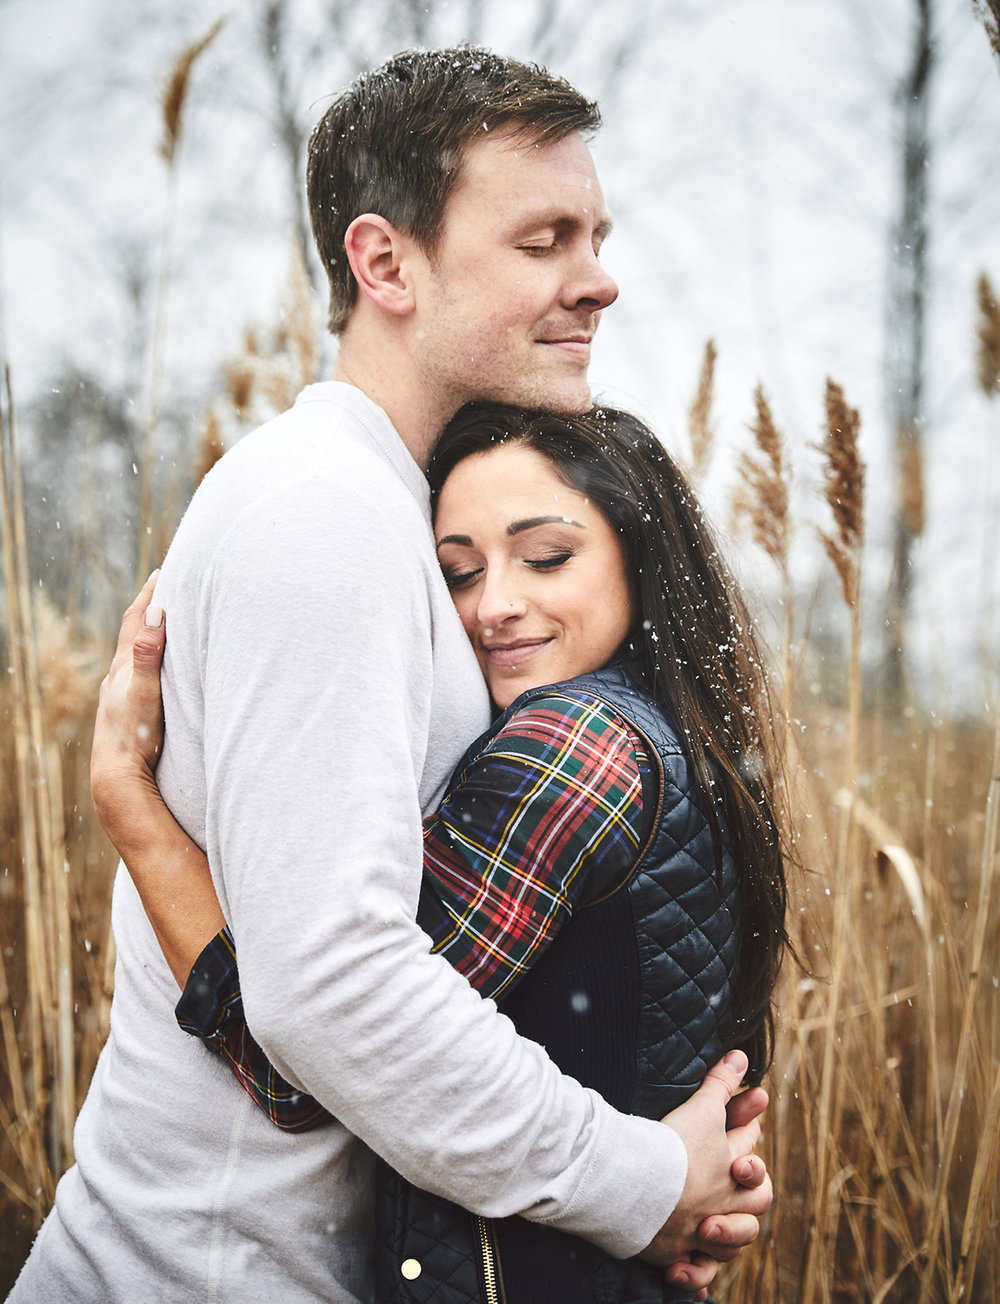 170114_LibertyStateParkEngagement_WinterEngagementPhotography_By_BriJohnsonWeddings0012.jpg